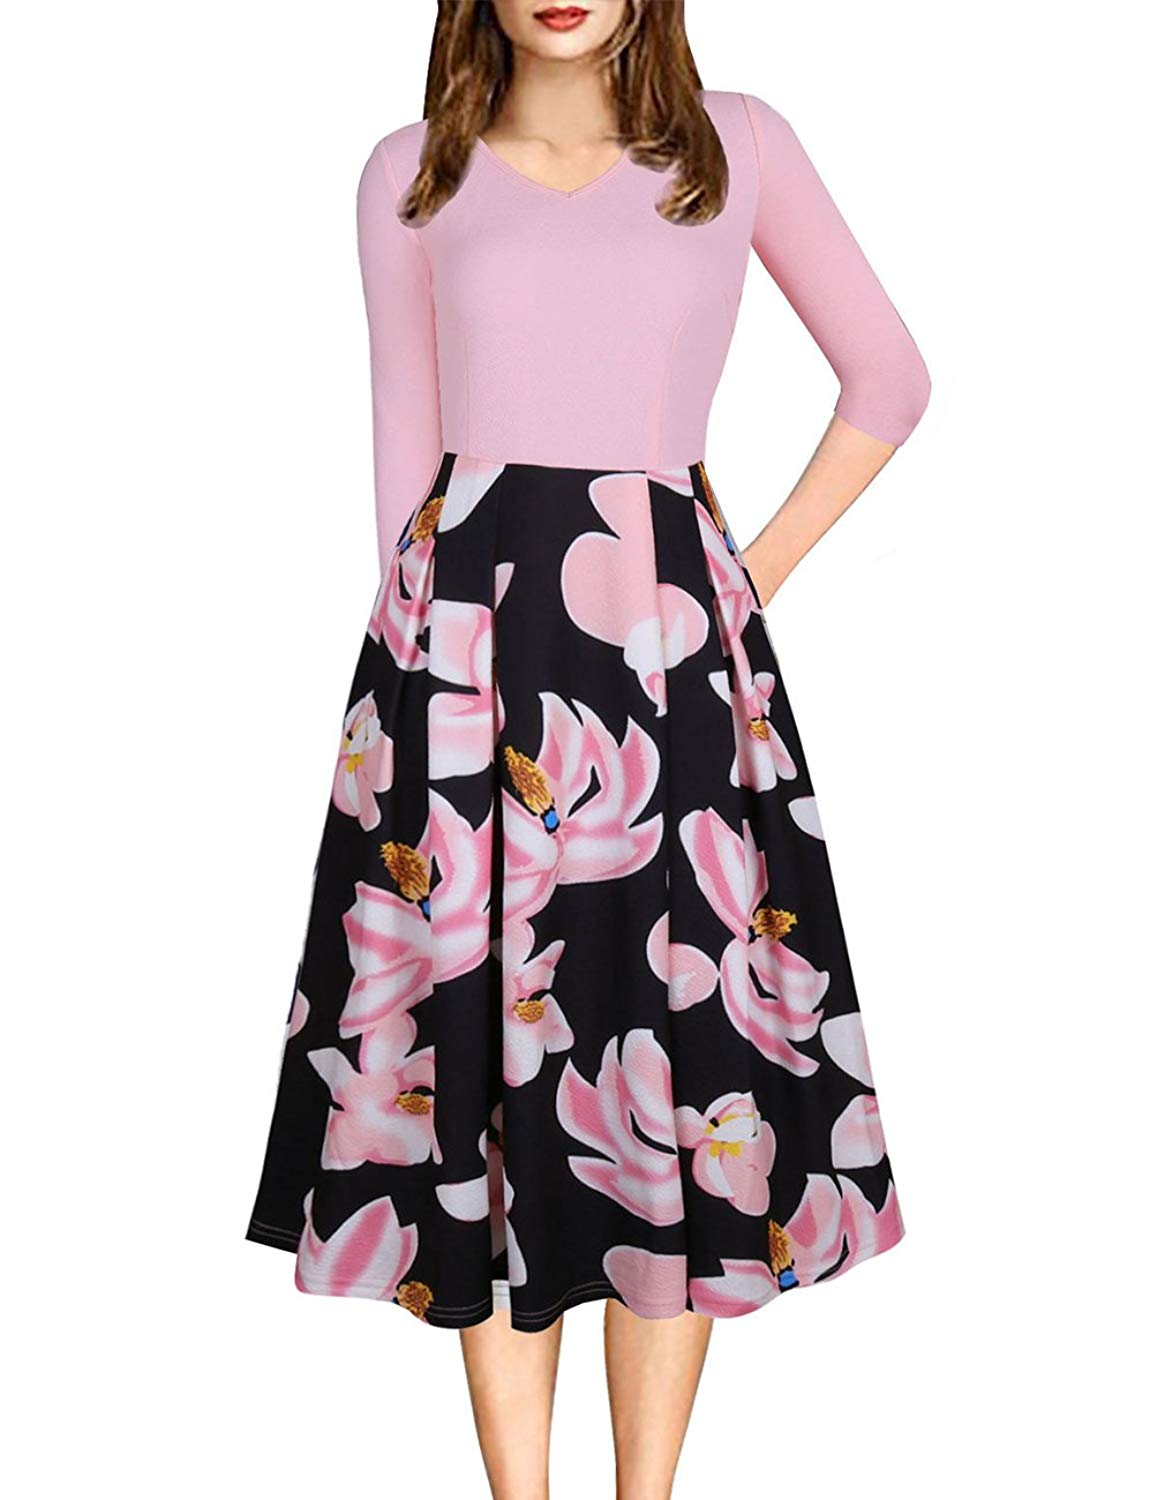 2ba30568f9 Get Quotations · Defal Womens Vintage 3 4 Sleeve Bohemia Floral Midi  Patchwork Dress Puffy Swing Casual Party